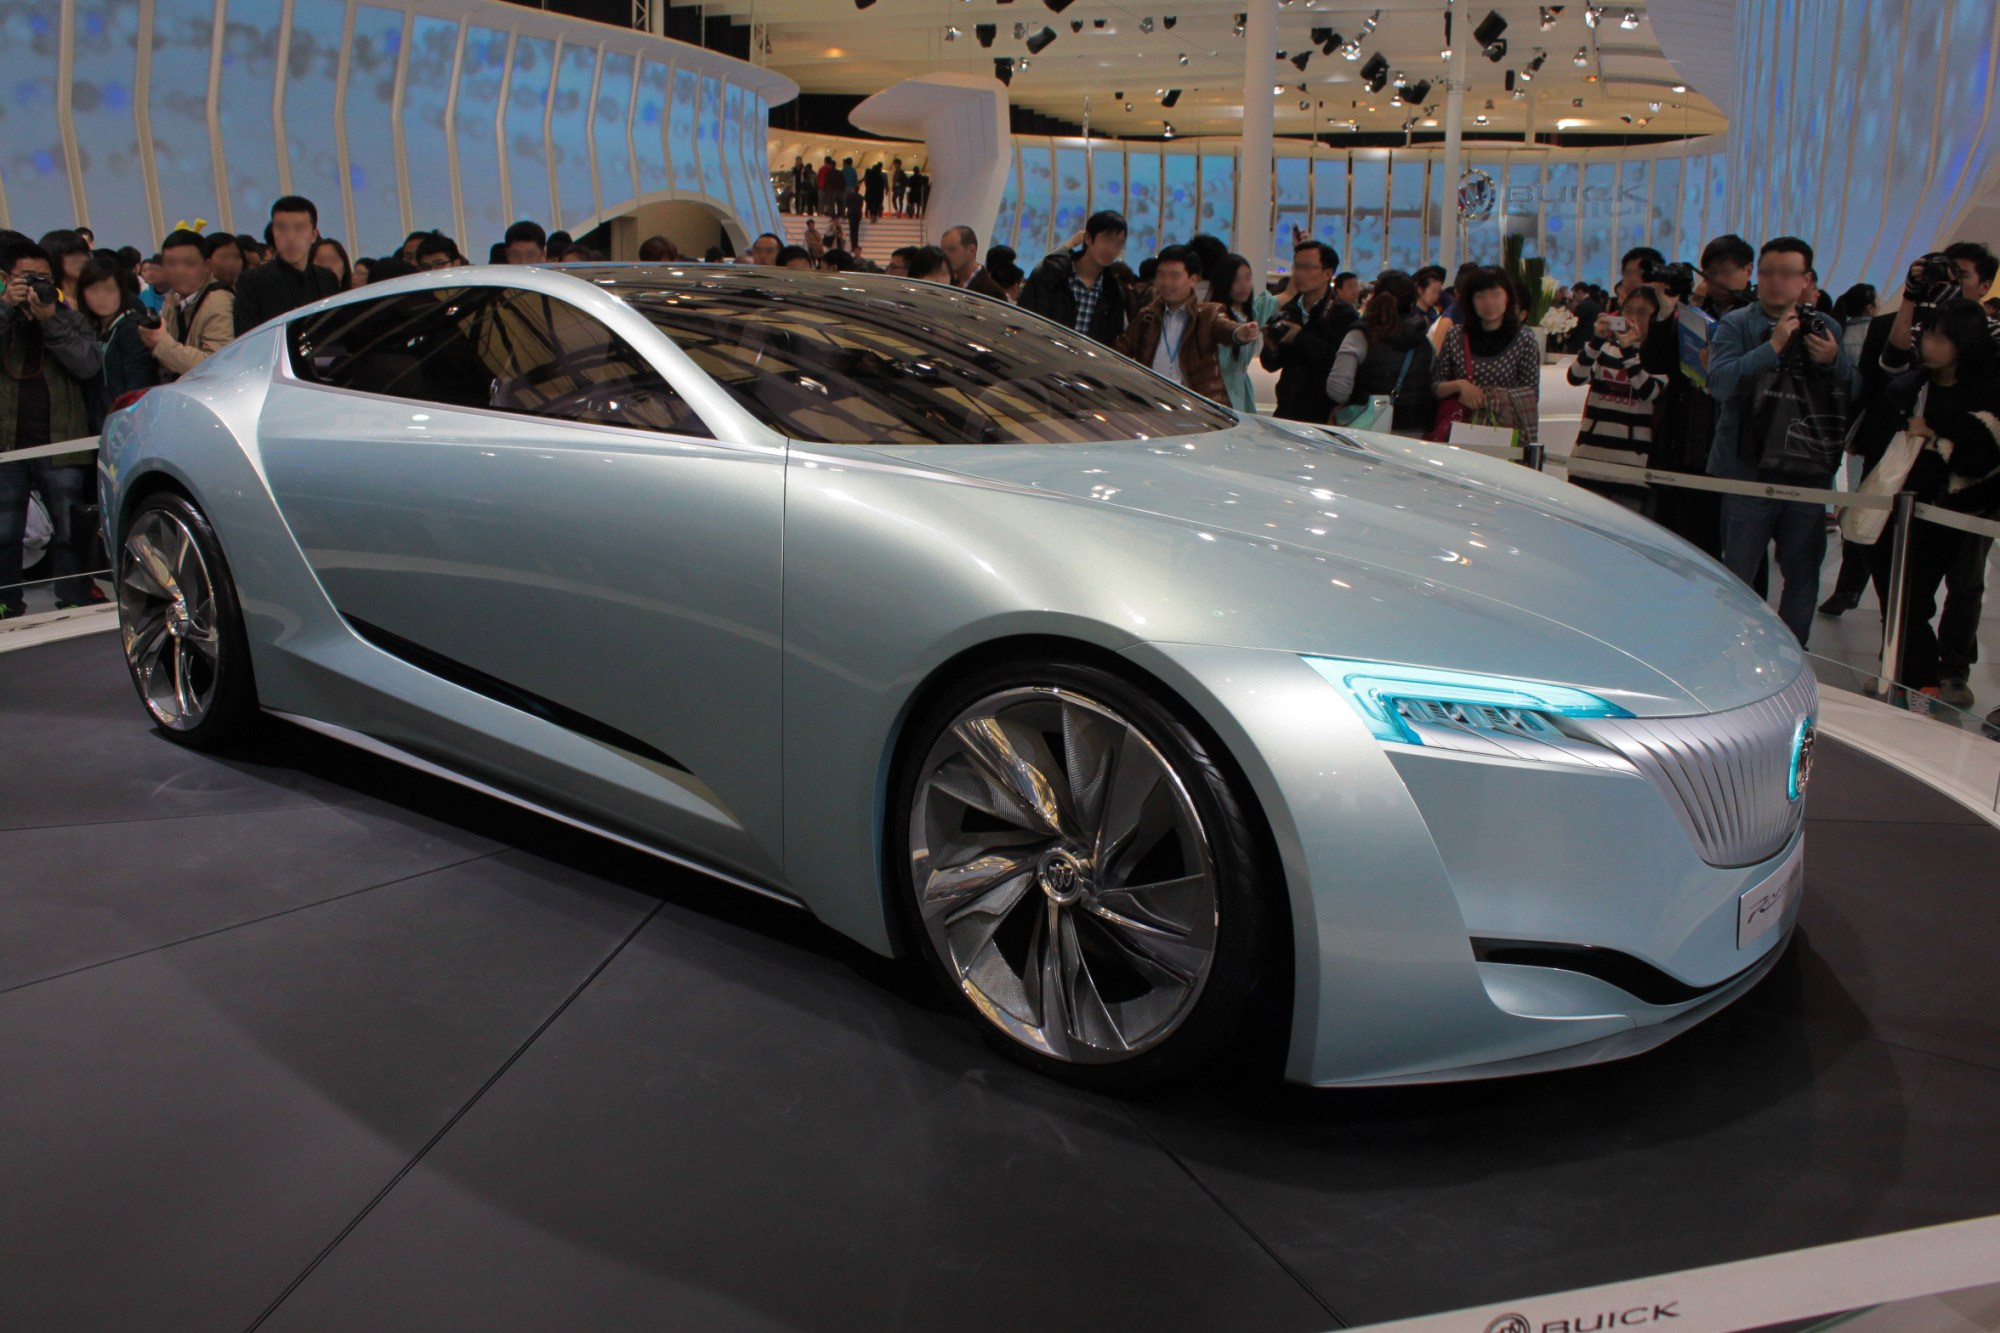 hight resolution of file buick riviera concept at auto shanghai 2013 jpg